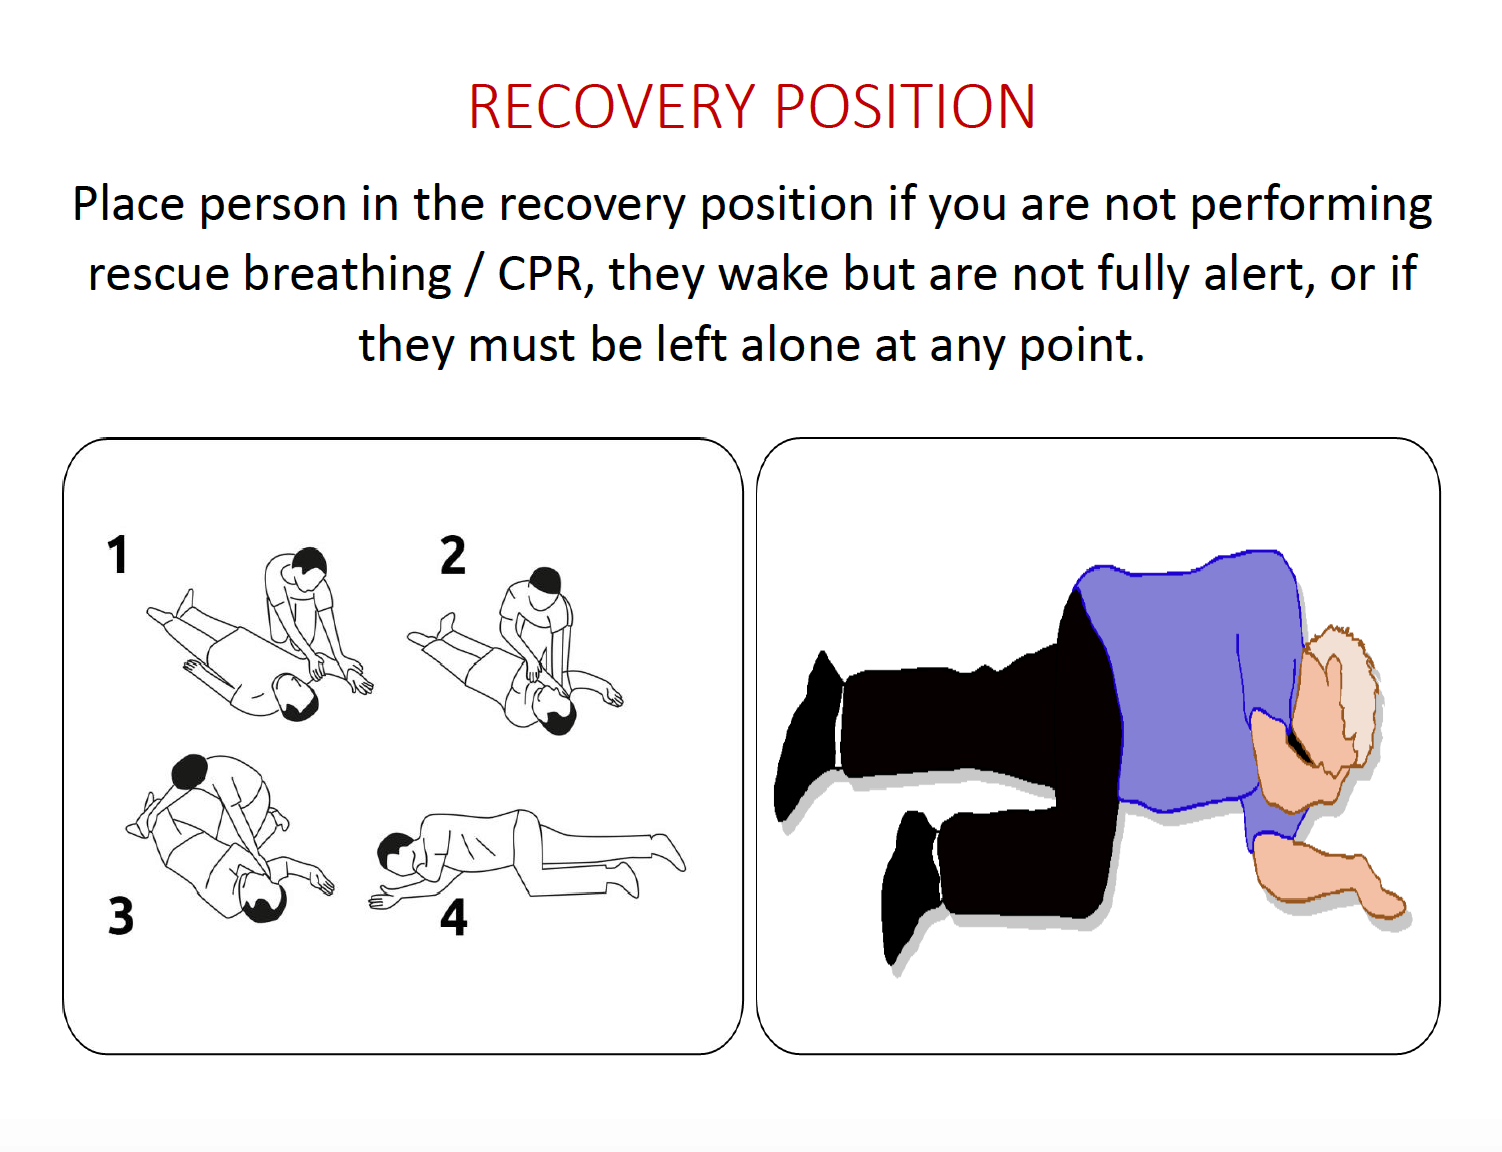 Step 5: Provide rescue breathing for the next two to three minutes, or put the person in the recovery position.